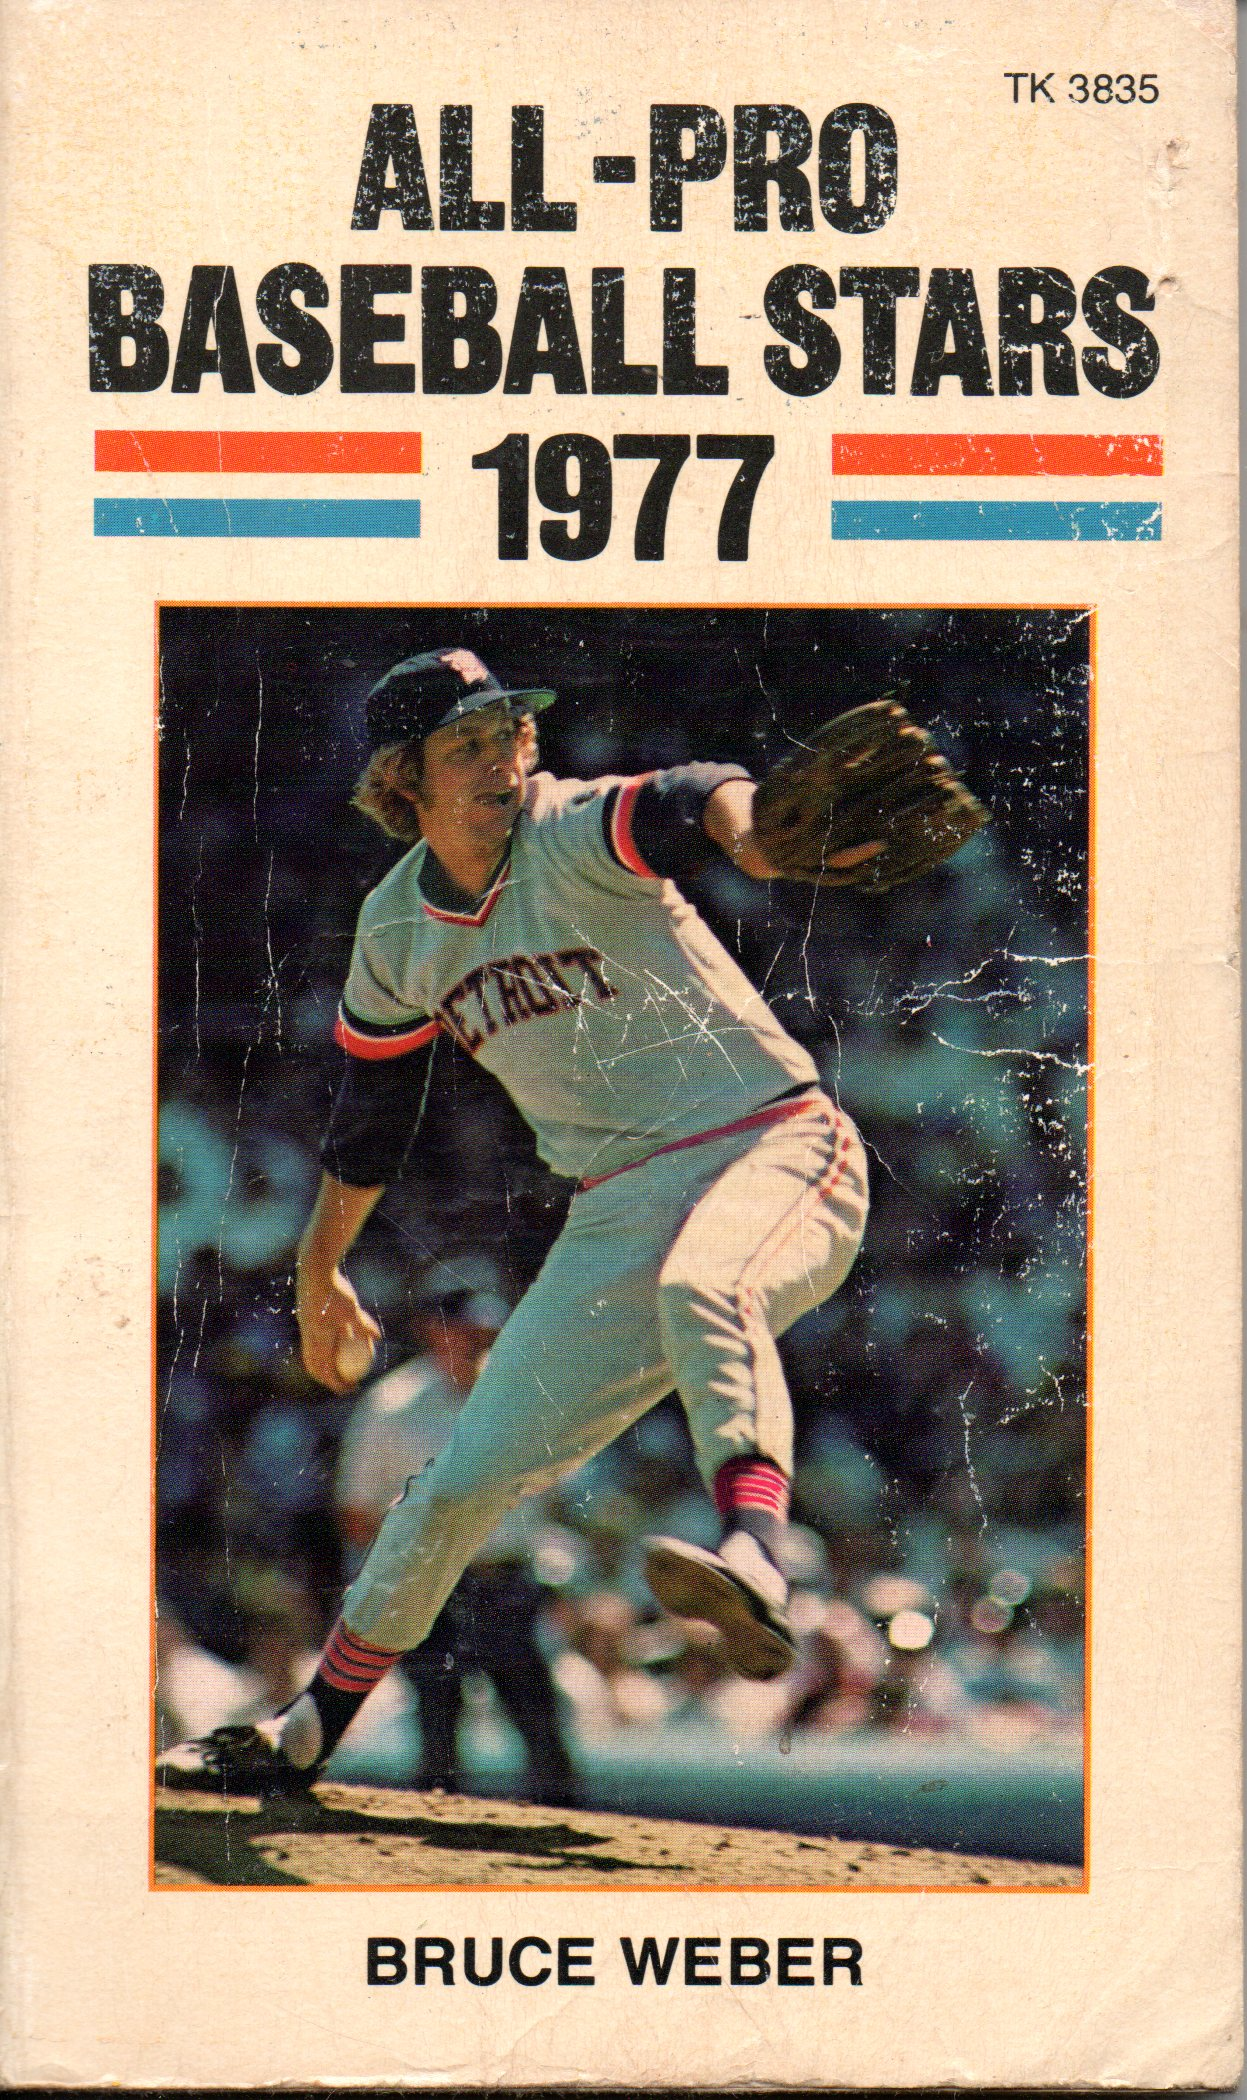 1970s To 2000s Baseball Books Tuff Stuff Price Guids For